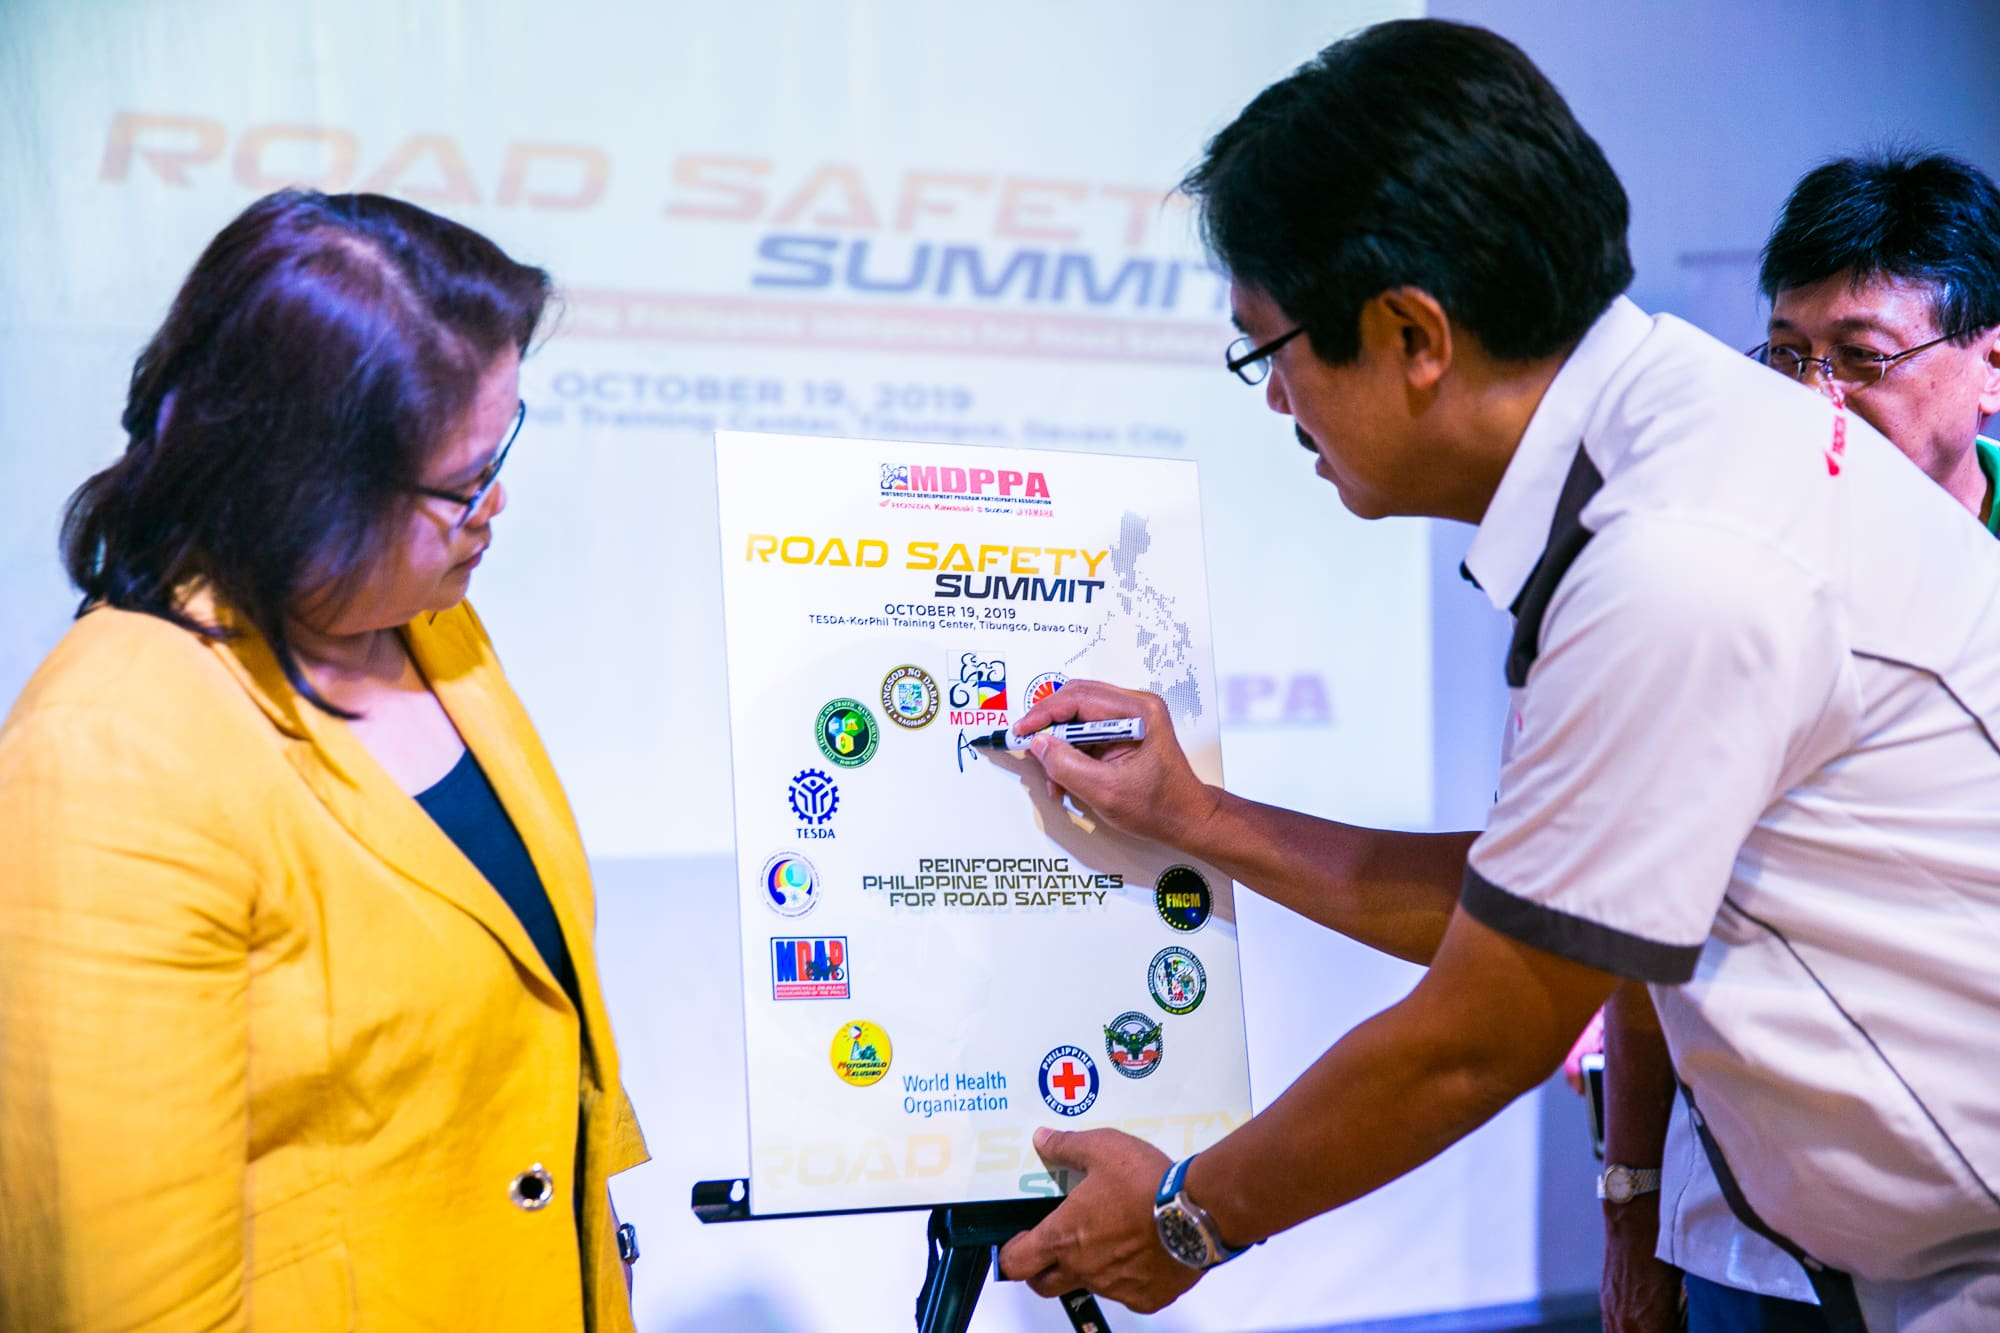 MDPPA Holds Premier Road Safety Summit